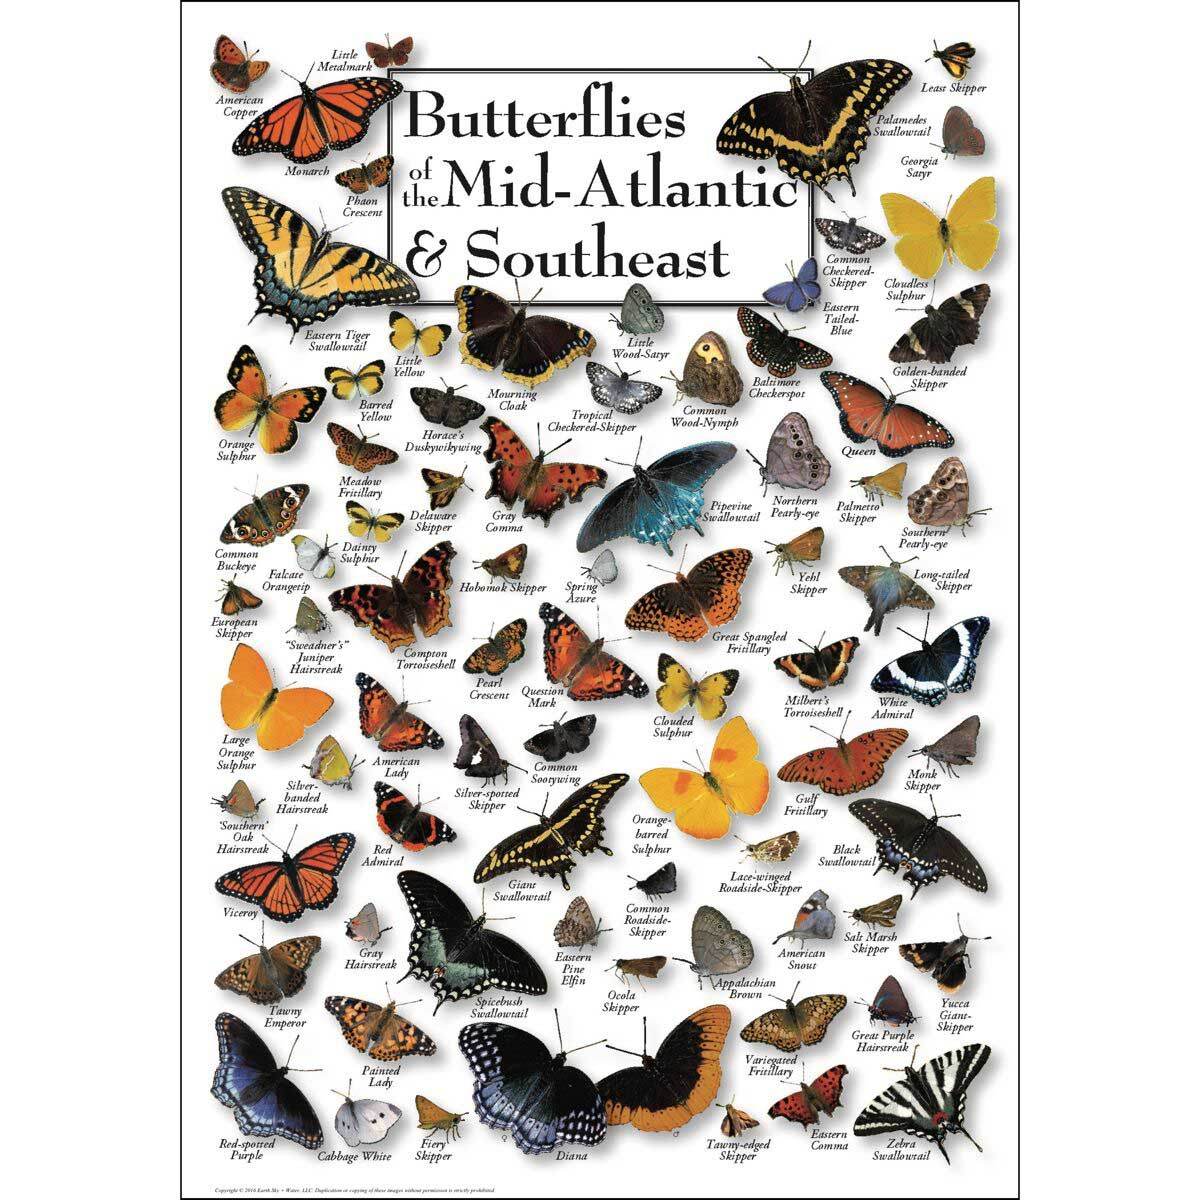 Butterflies of Mid-Atlantic & the Southeast Butterflies and Insects Jigsaw Puzzle